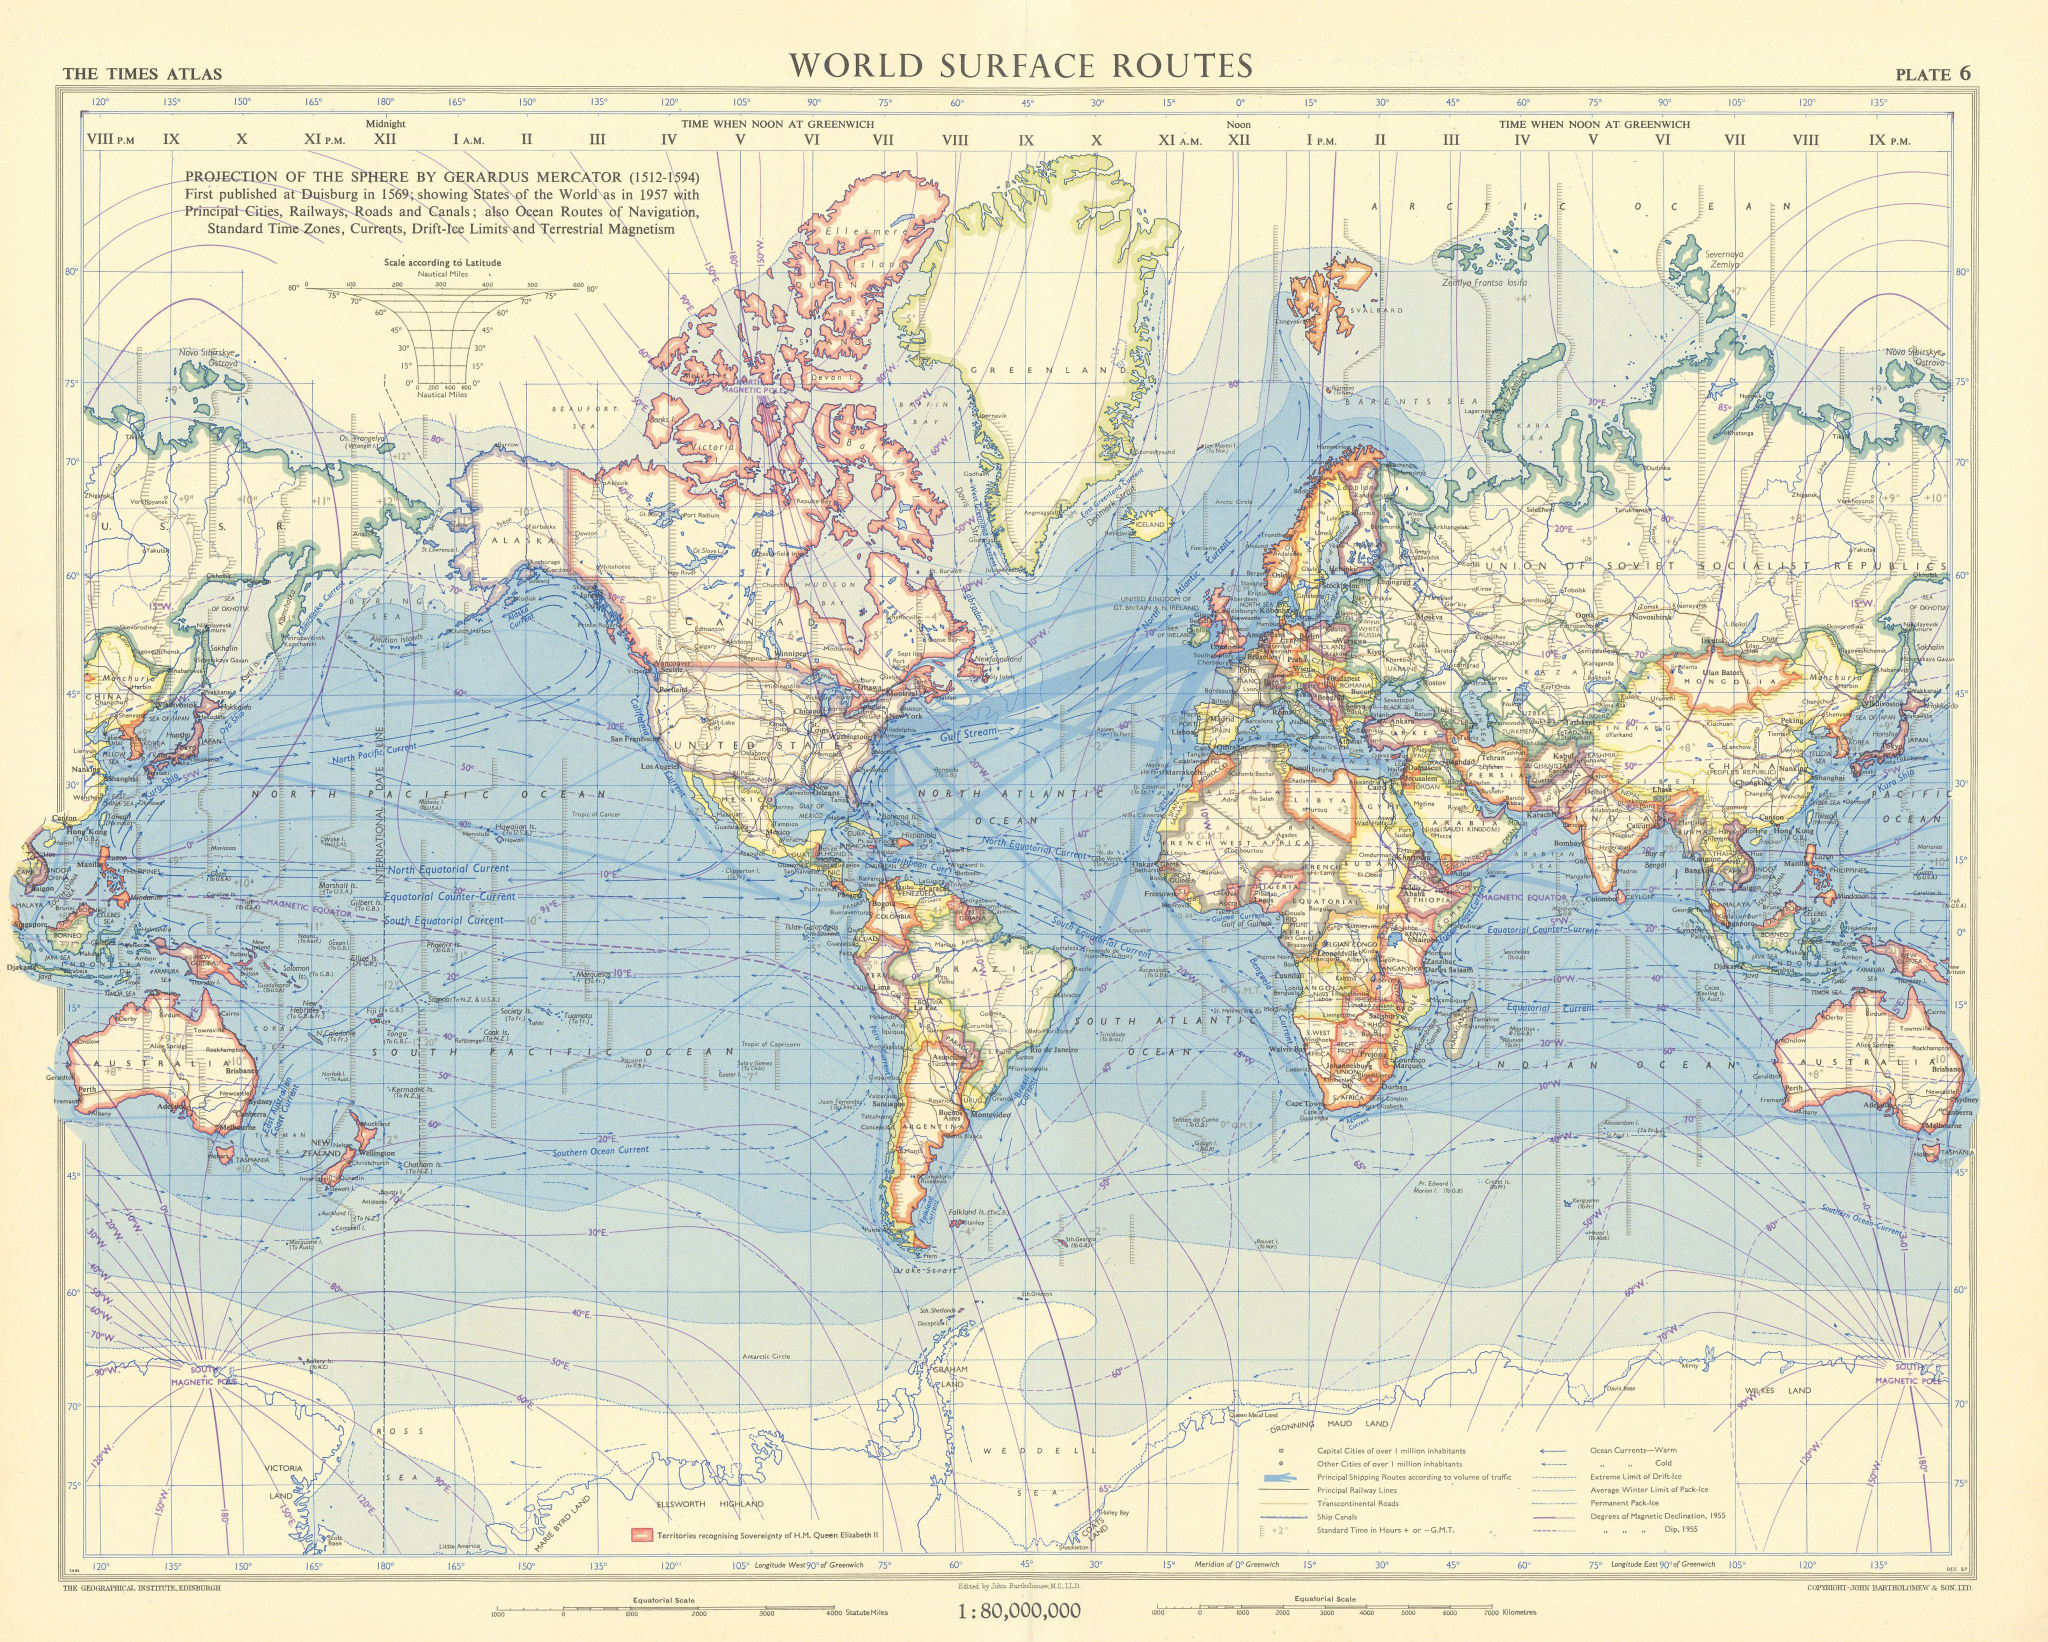 World surface routes. Shipping & railways. British Commonwealth. TIMES 1958 map